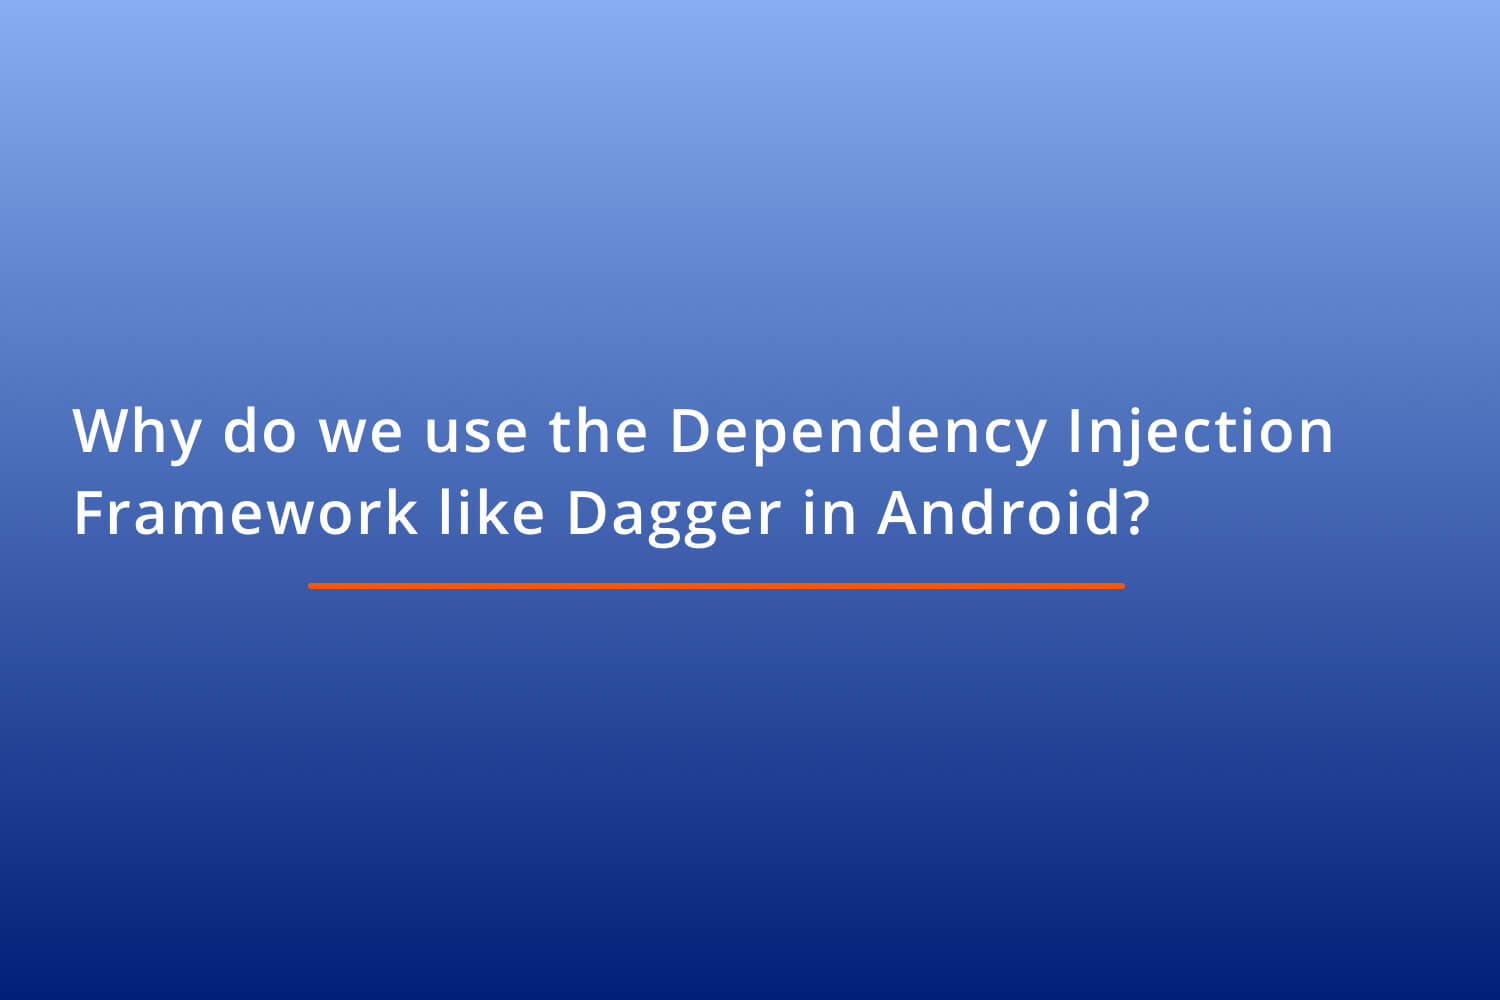 Why do we use the Dependency Injection Framework like Dagger in Android?